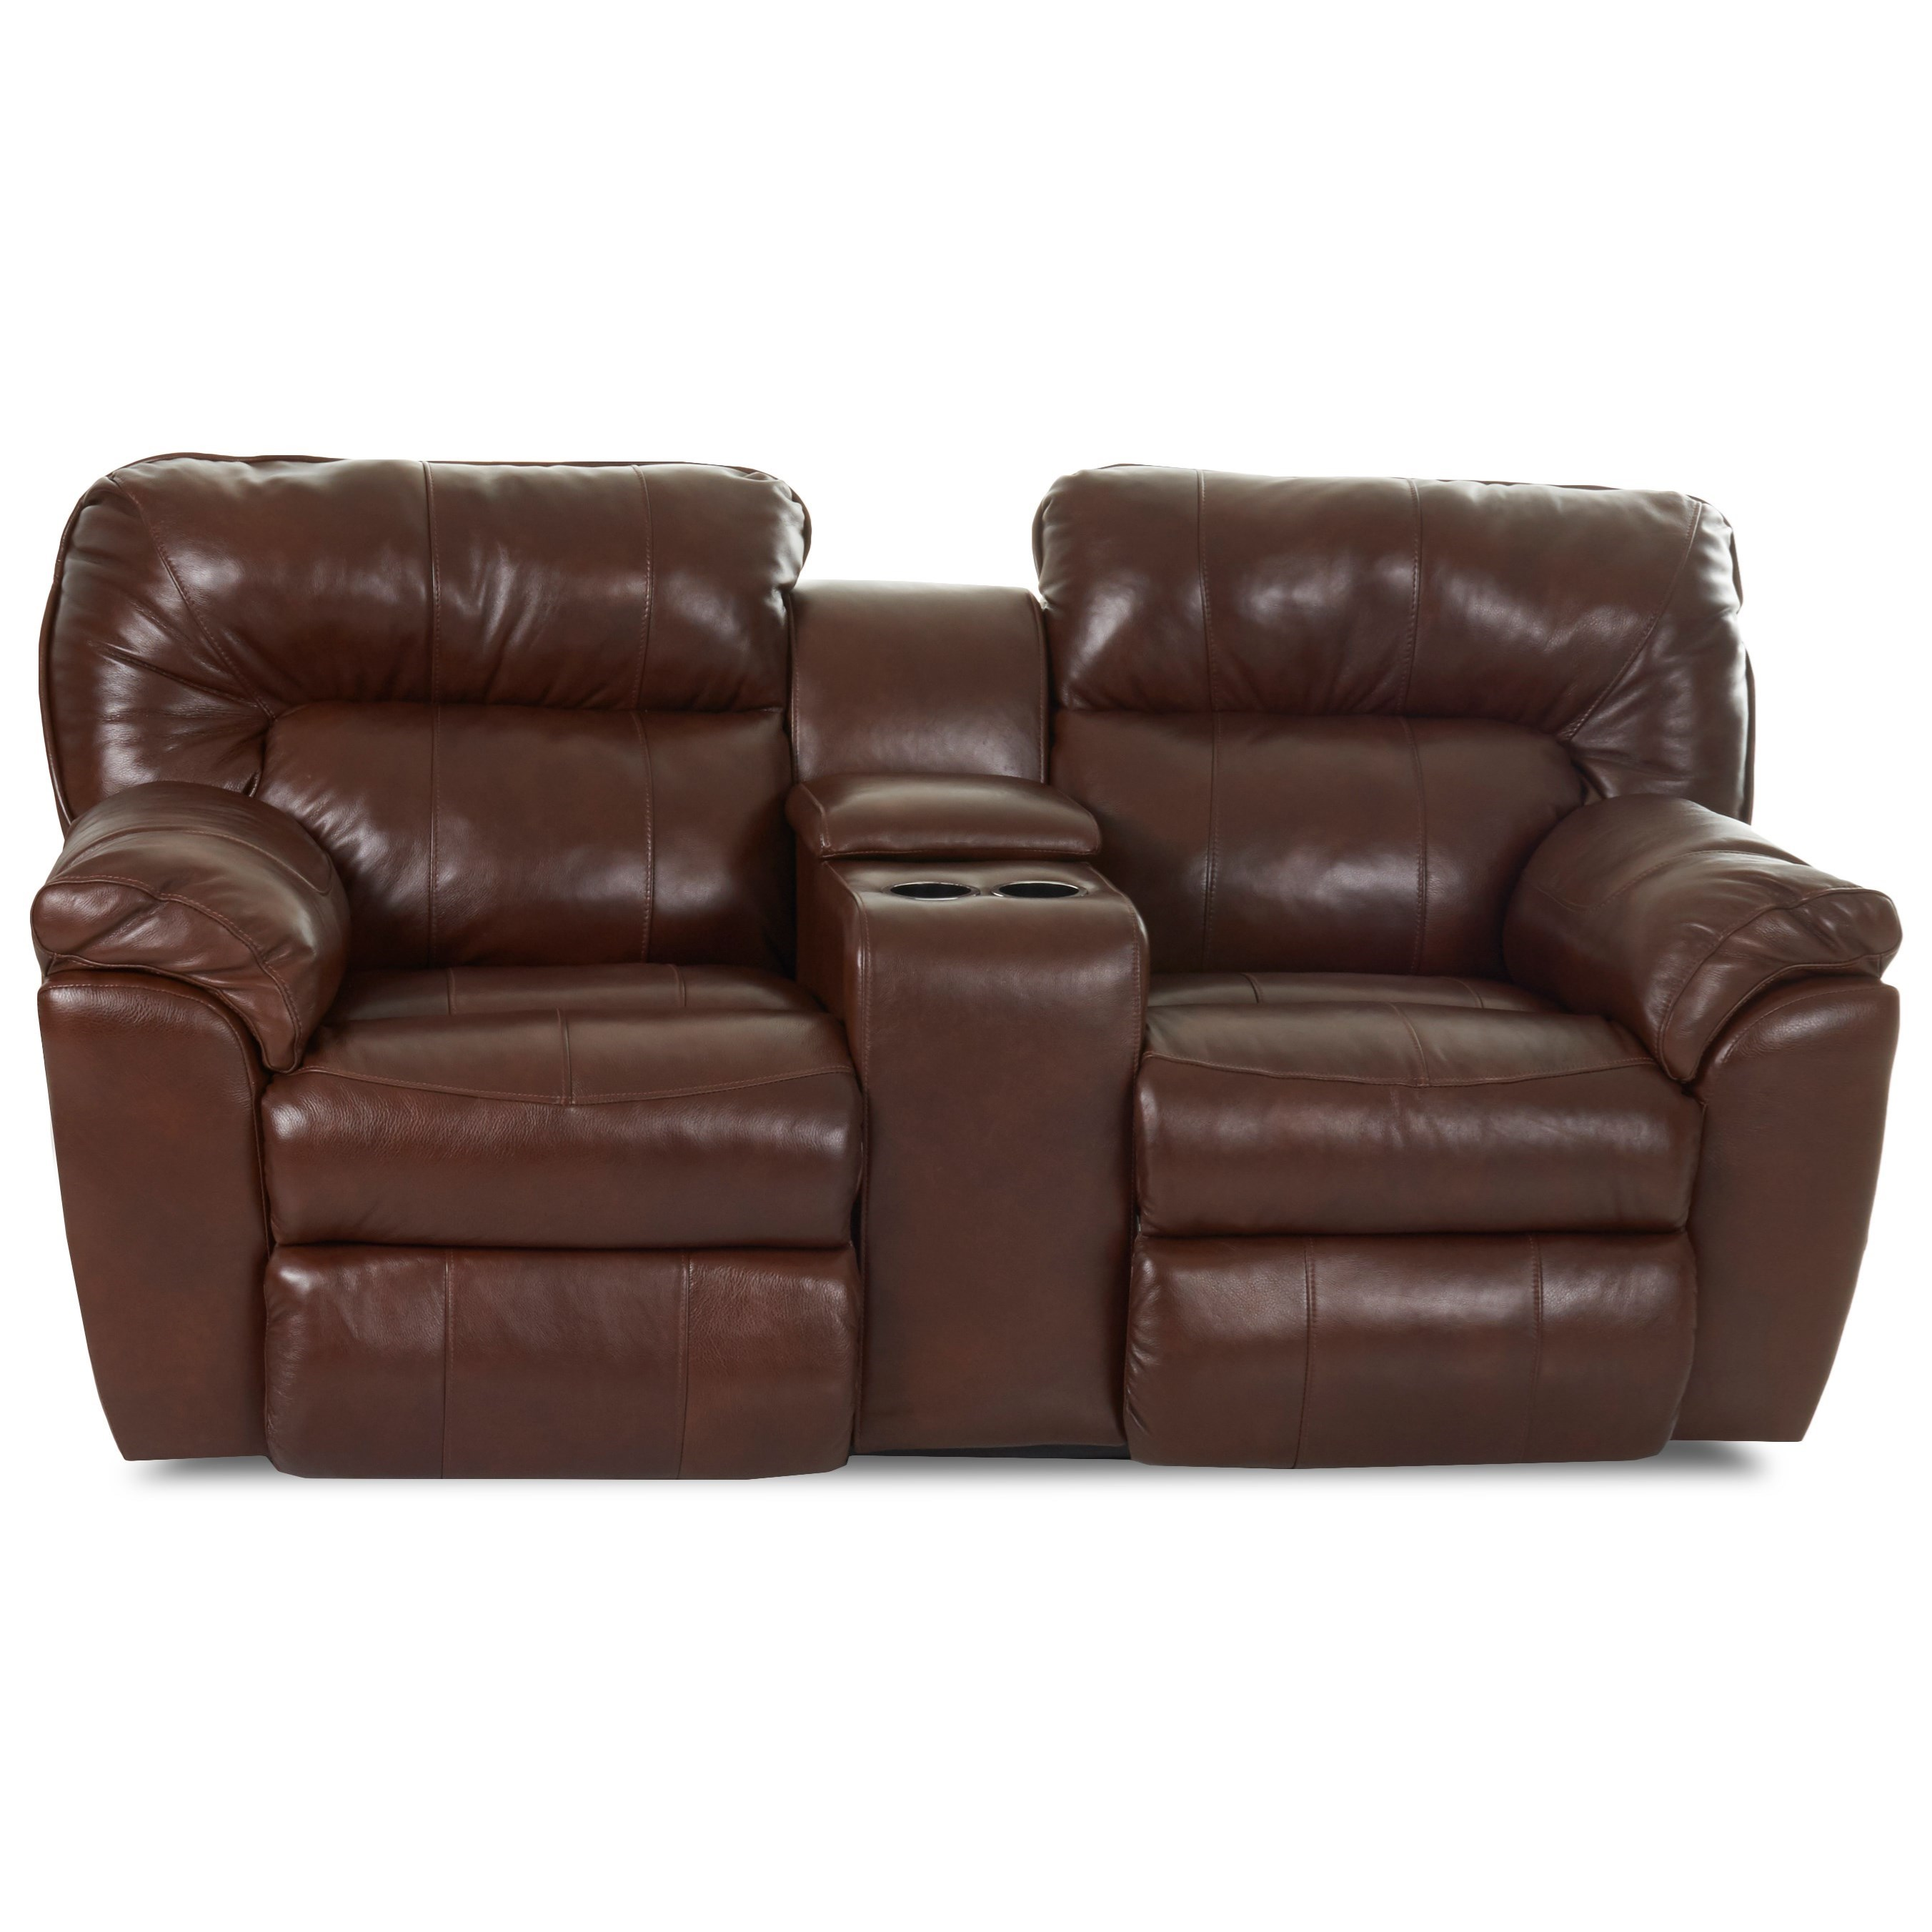 Freeman Casual Power Reclining Love Seat by Klaussner at Johnny Janosik